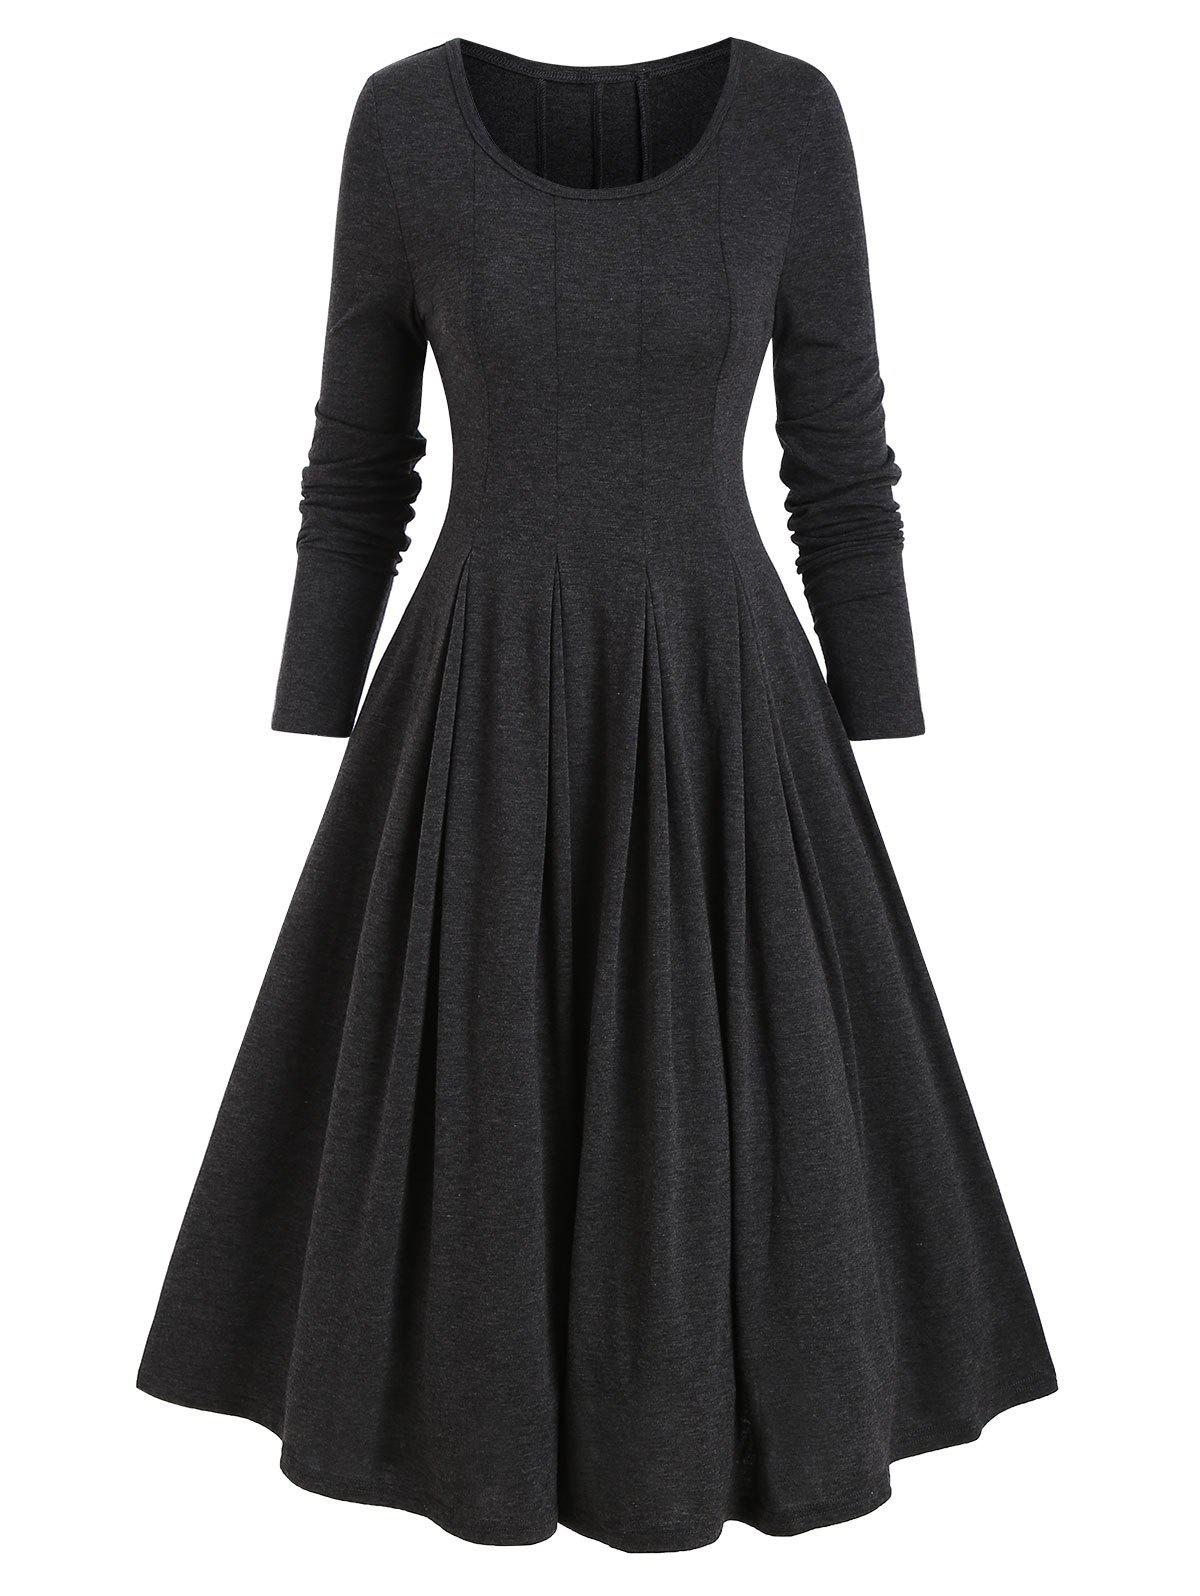 Long Sleeve Heathered Pleated Dress - DARK GRAY XL